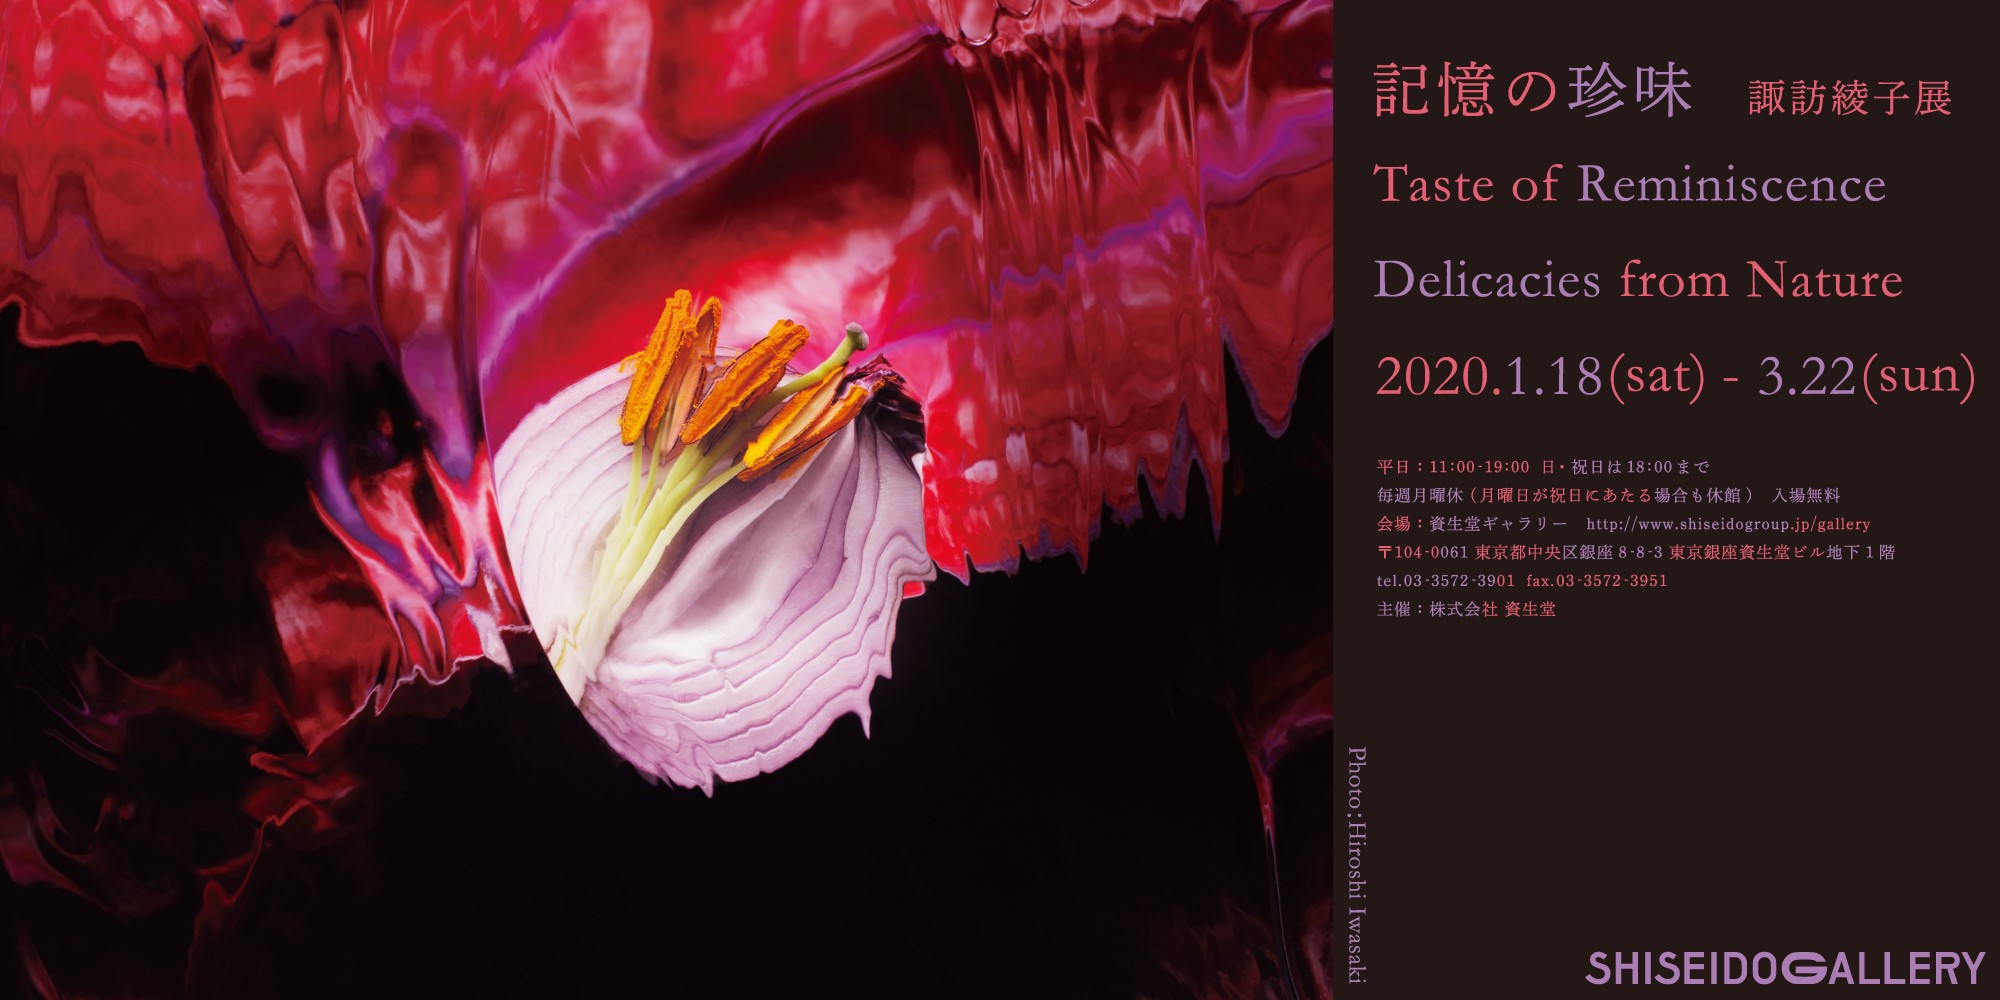 """Taste of Reminiscence, Delicacies from Nature: Ayako Suwa Exhibition""  will run from January 18 (Sat) — March 22 (Sun), 2020"